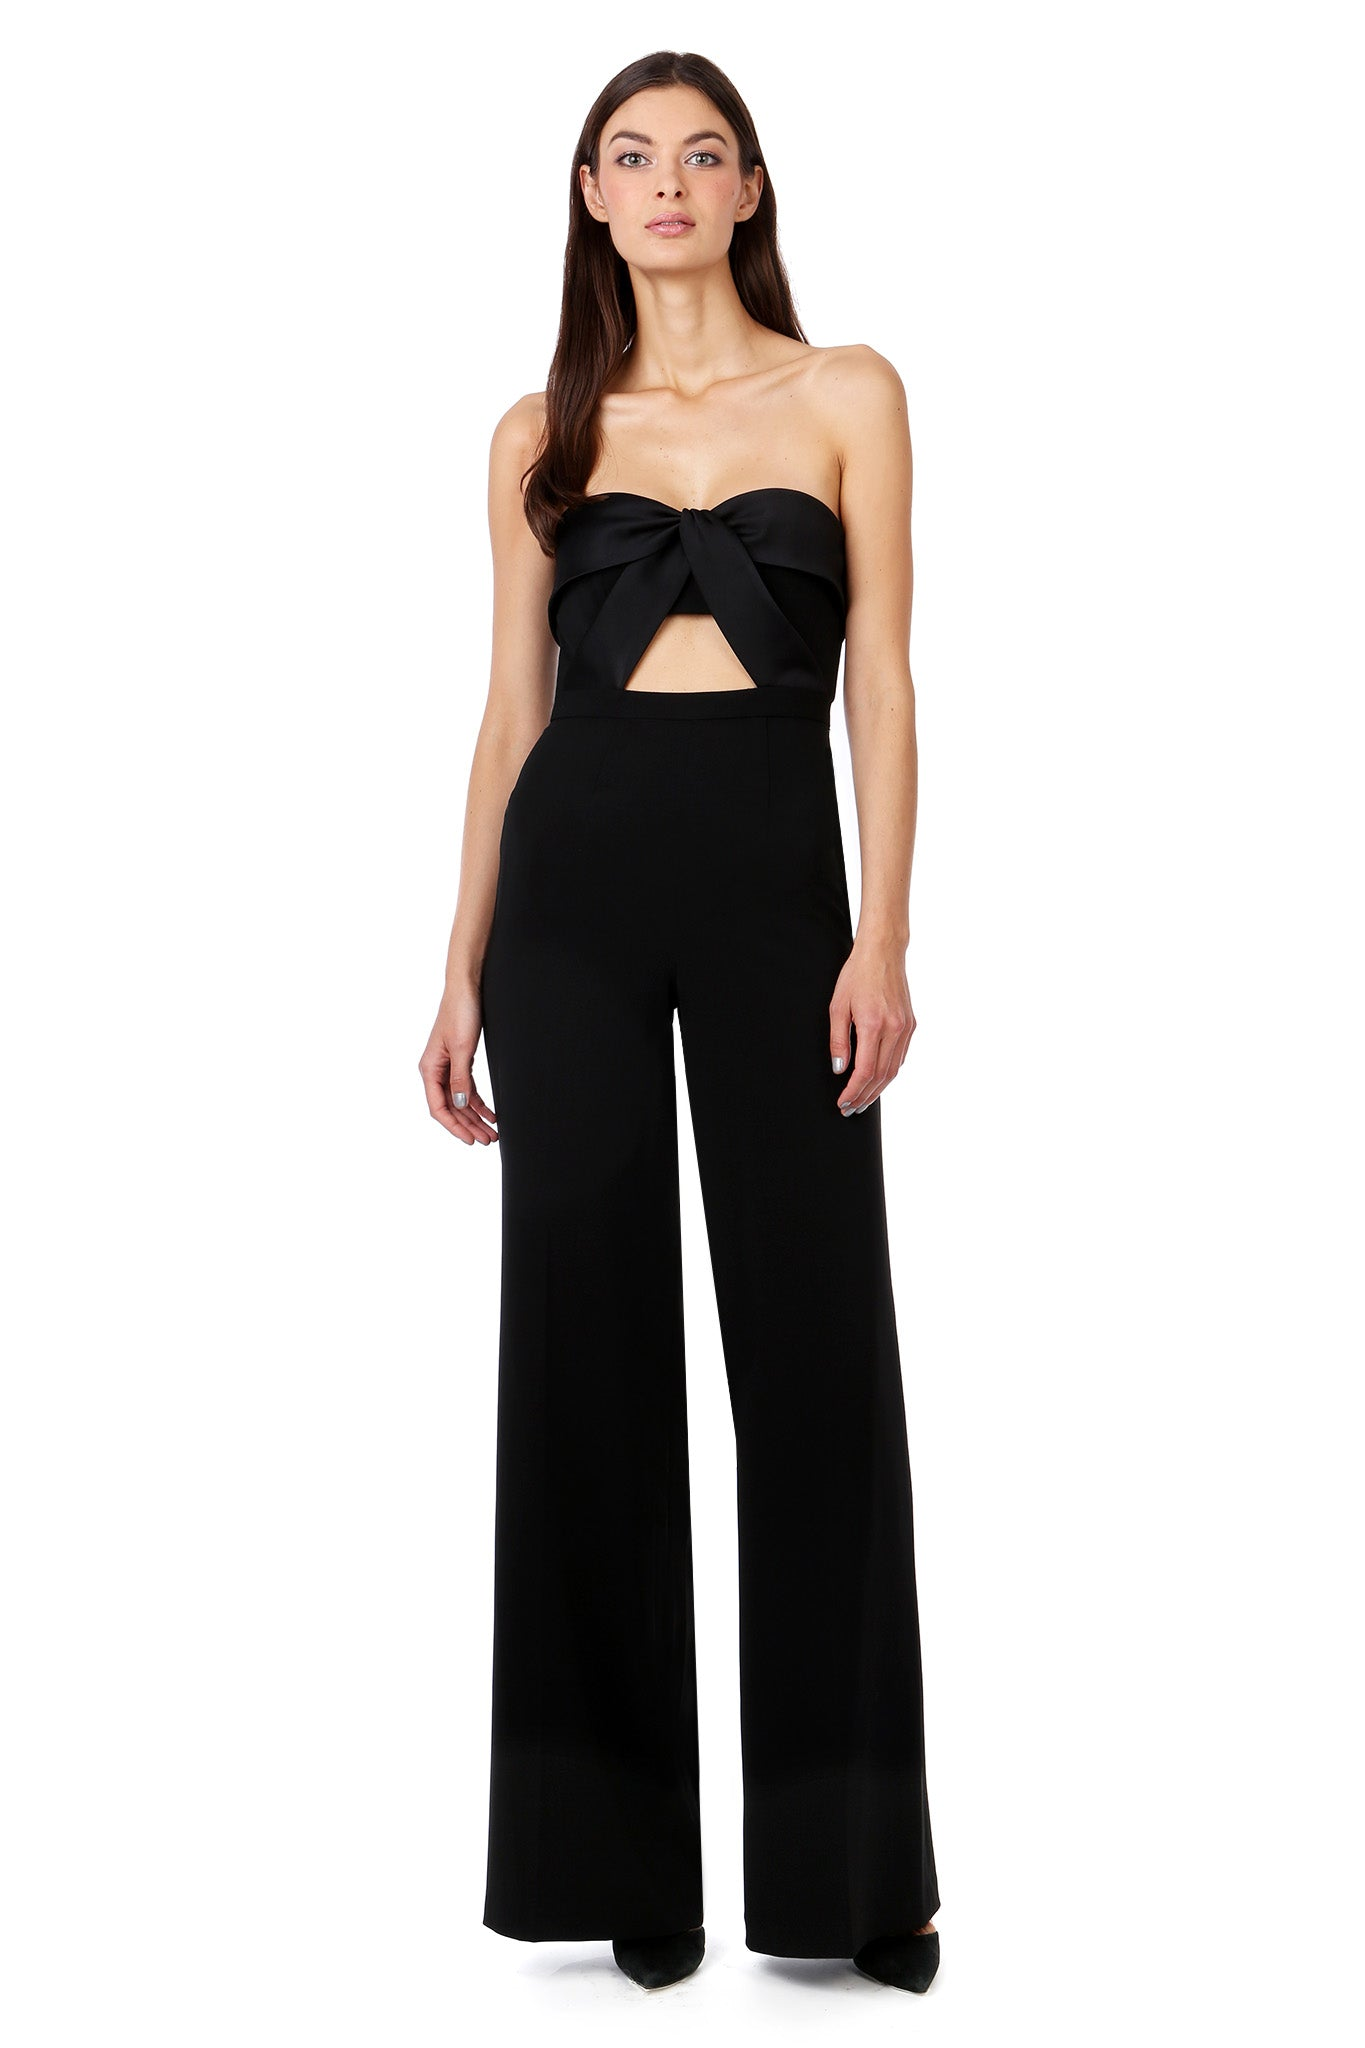 Black Silky Bandeau Strapless Jumpsuit - Front View